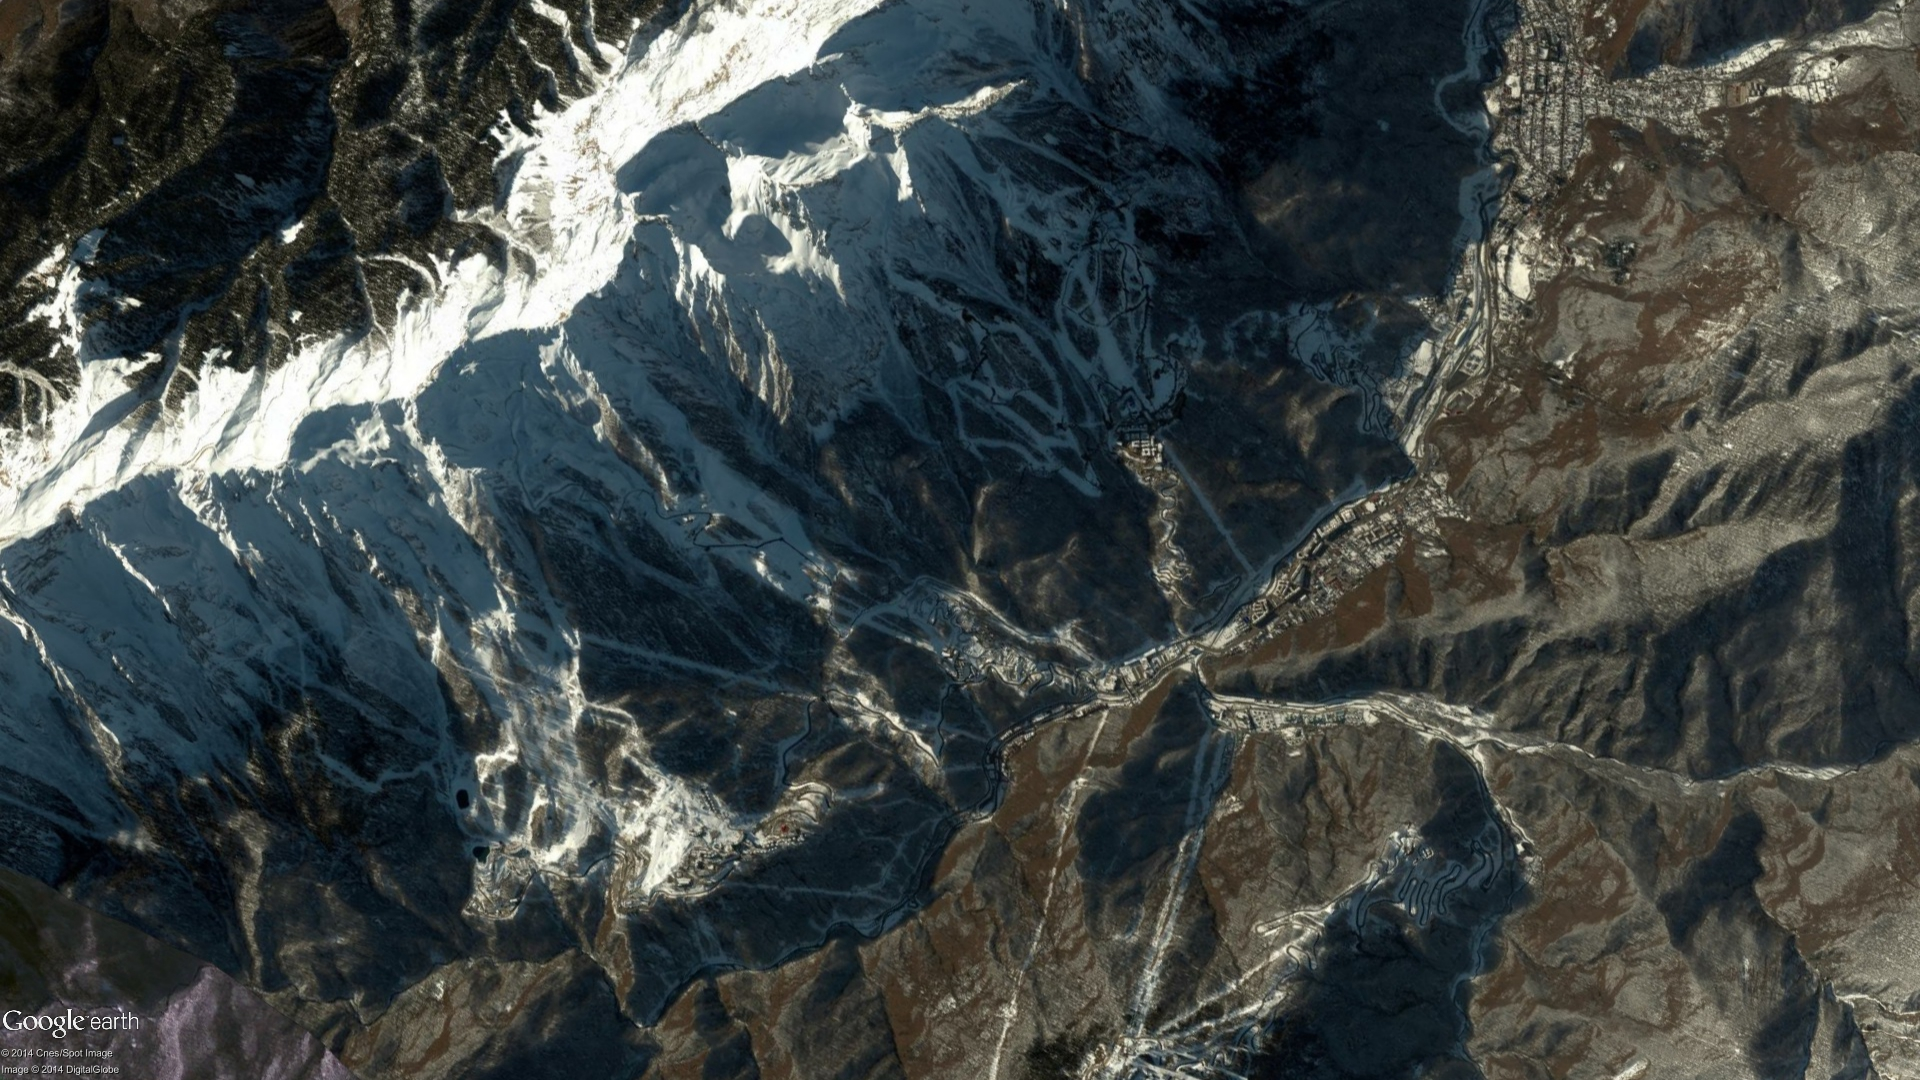 Earth from Space: 2014 Winter Olympics Slopes